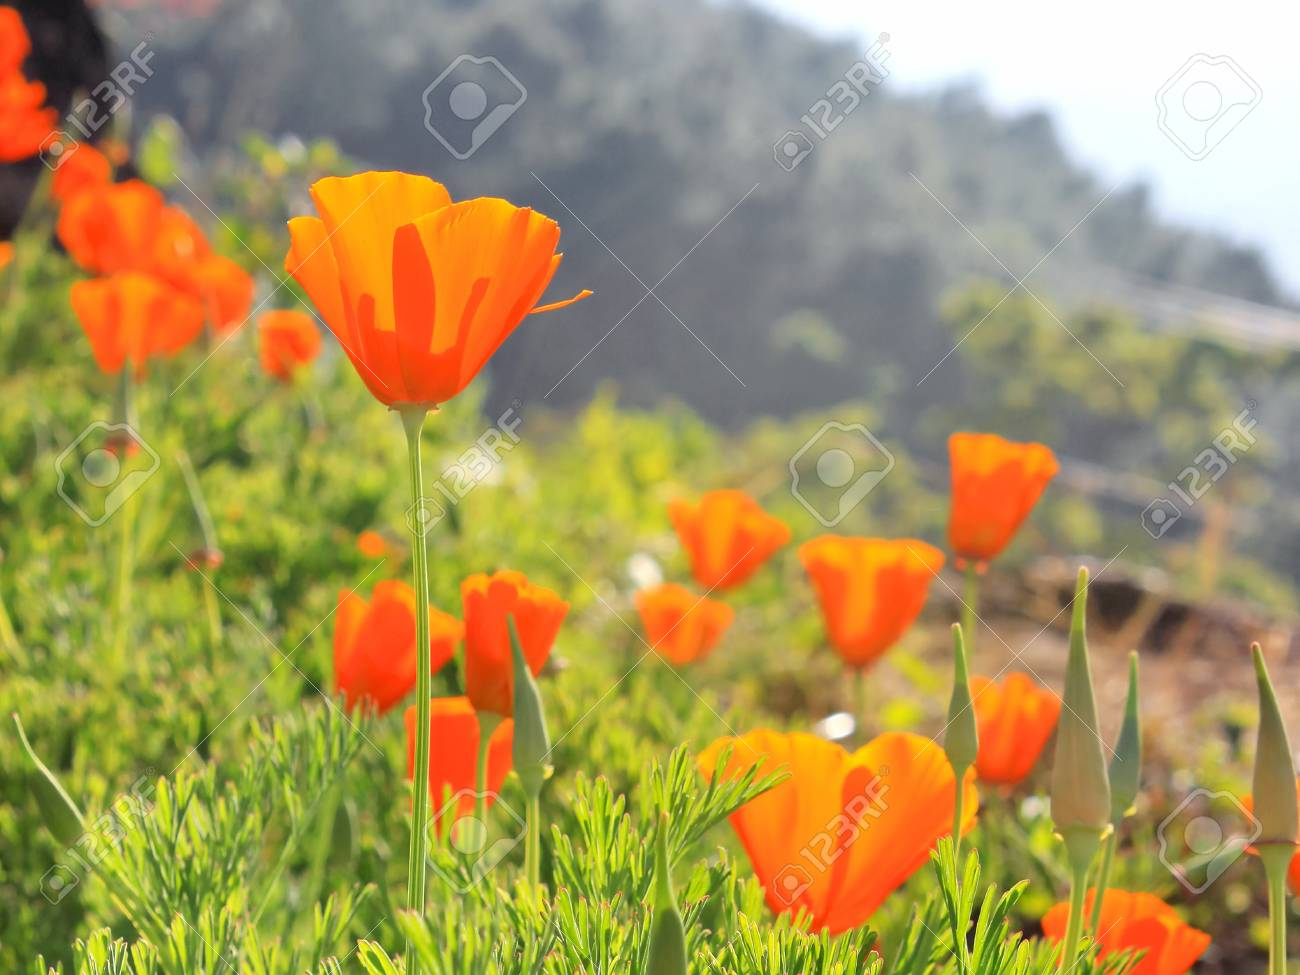 Orange Poppy Flowers In A Garden Stock Photo Picture And Royalty